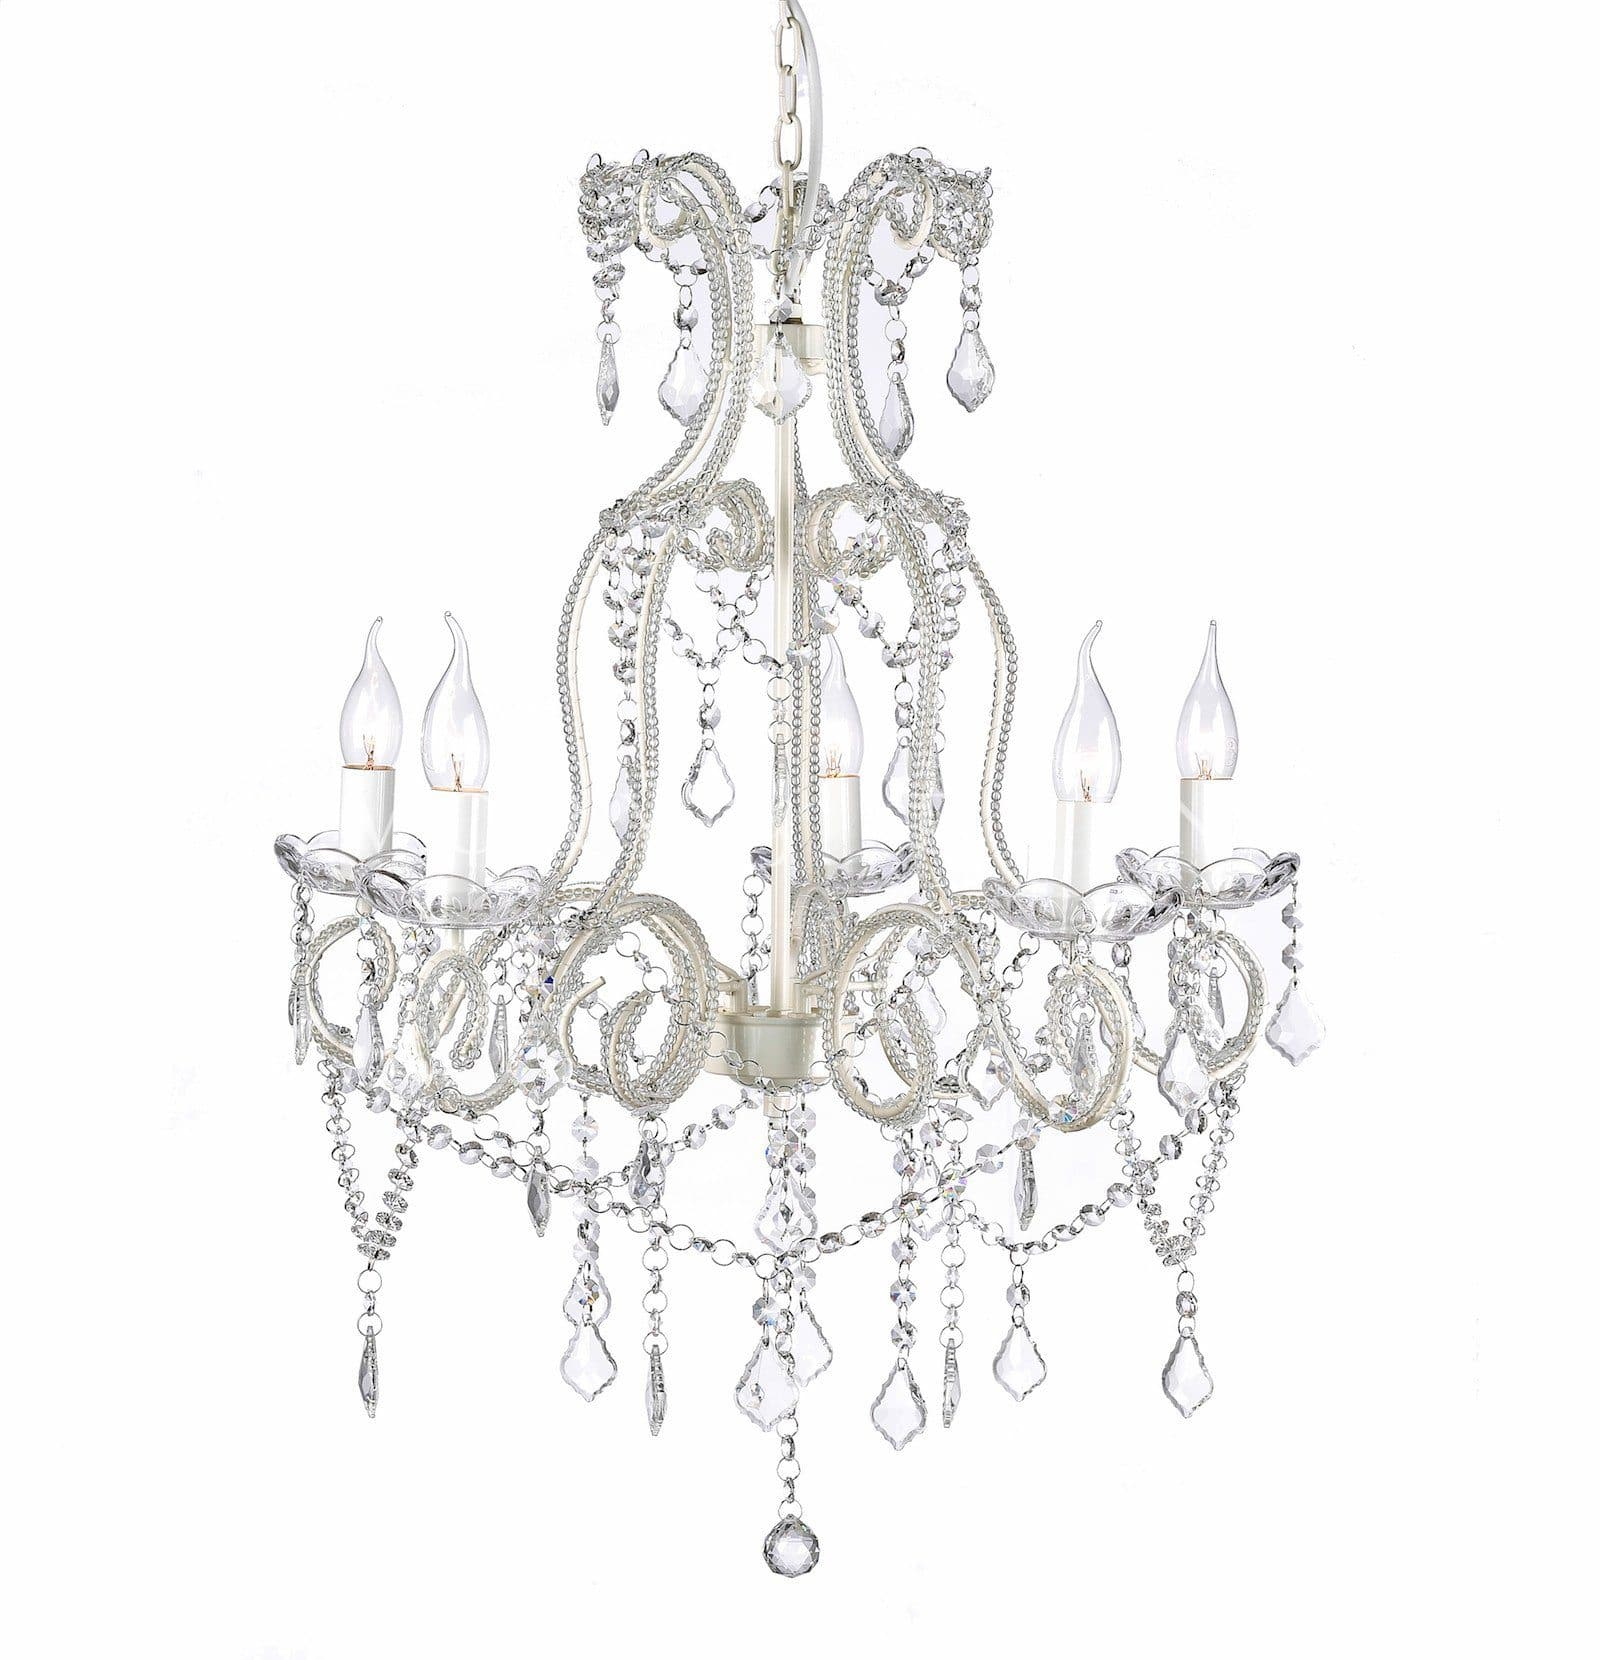 Glass crystal chandelier 5 light shabby paris cream ivory shabby french white 5 light baroque crystal chandelier on white background arubaitofo Image collections